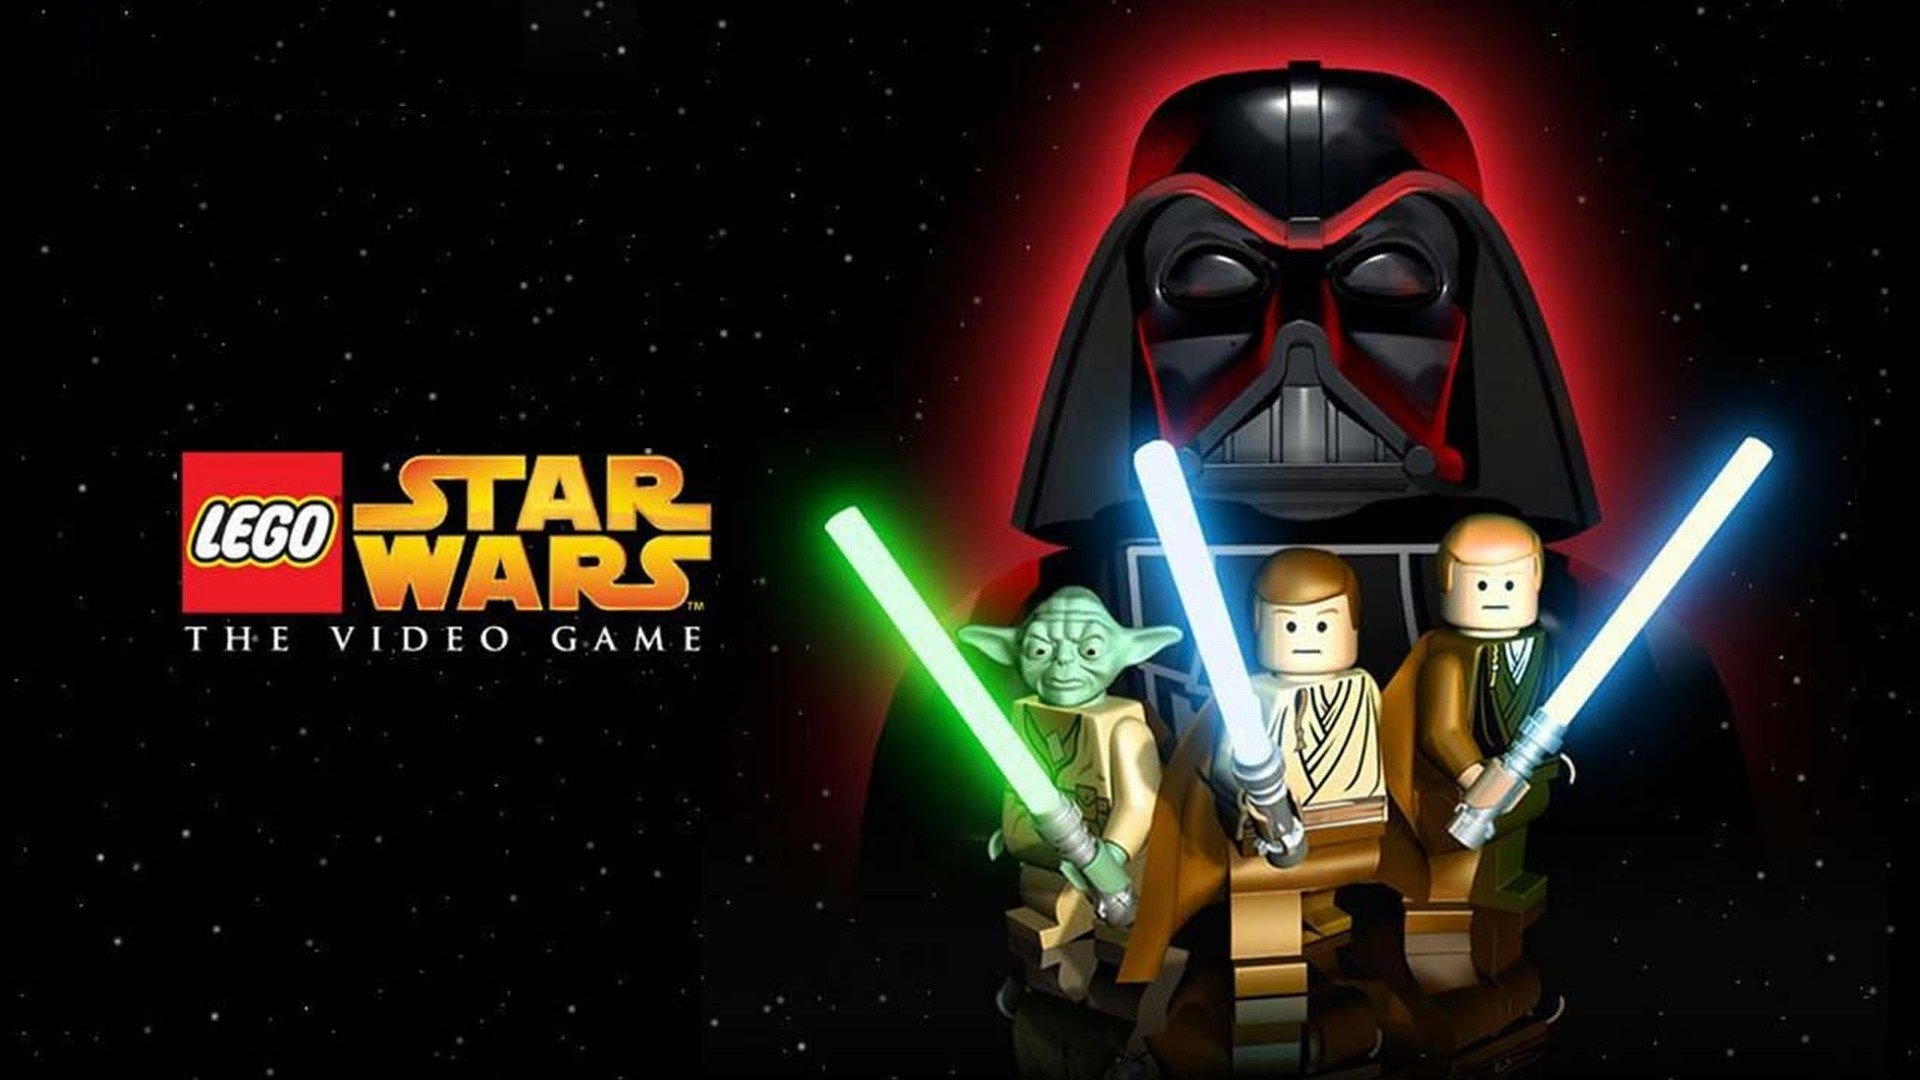 2 Lego Star Wars The Video Game Hd Wallpapers Background Images Wallpaper Abyss